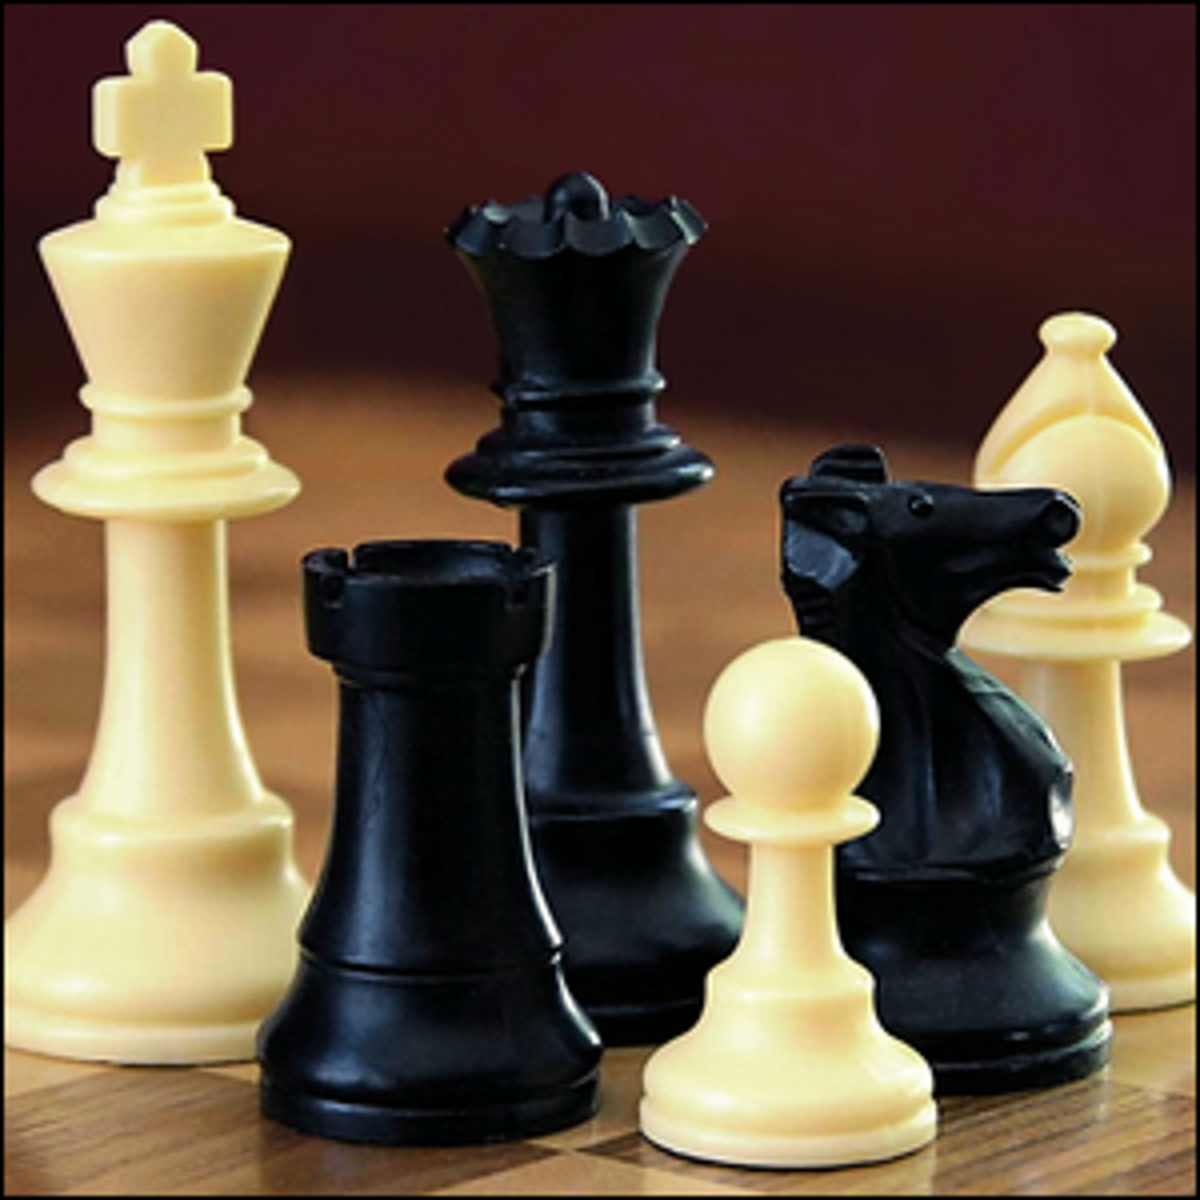 Close up view of chess pieces on a chess board.